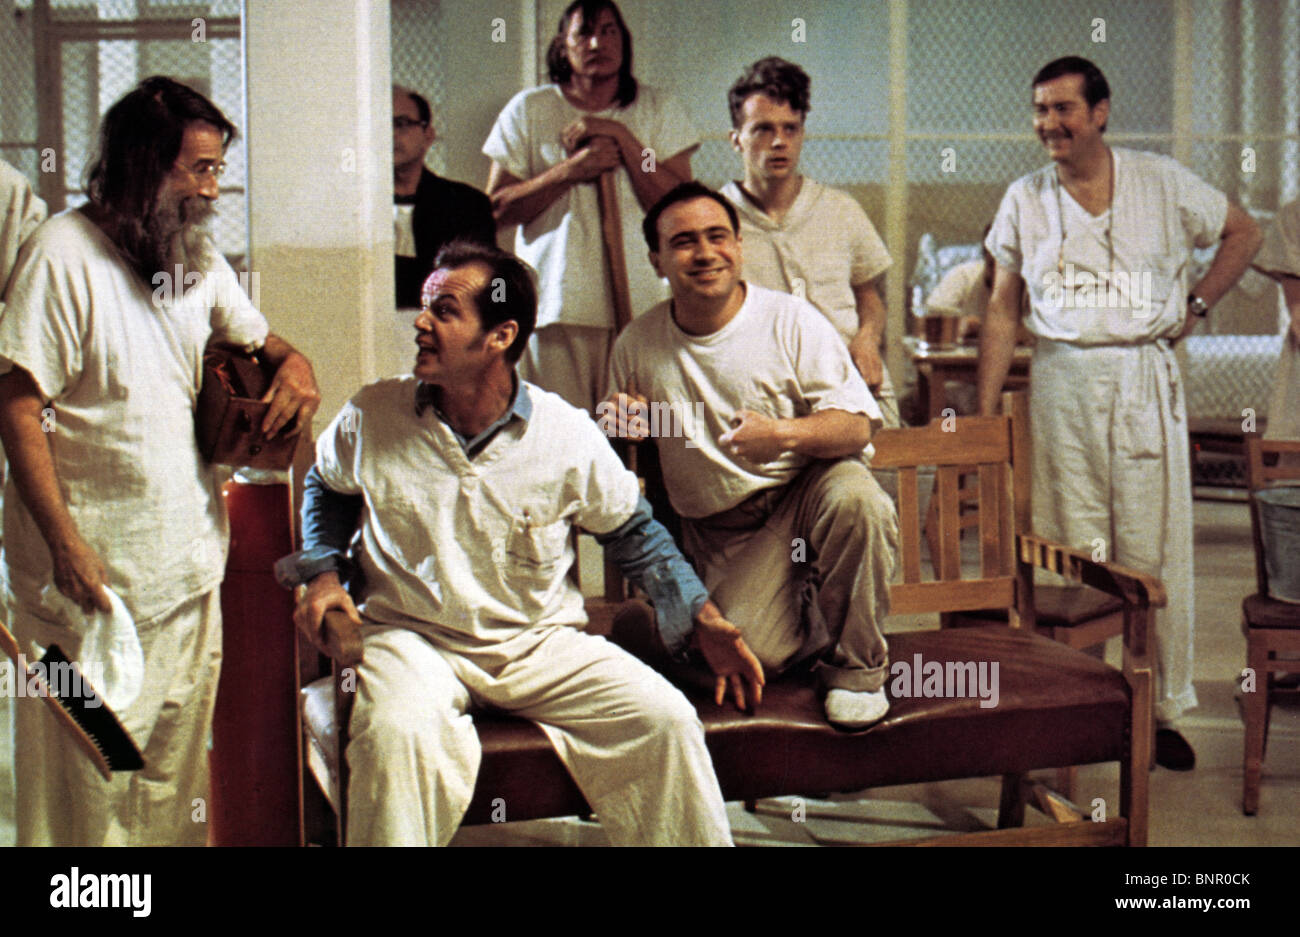 an analysis of one flew over the cuckoos nest a film by milos forman Hollywood stars have paid tribute to the oscar-winning one flew over the cuckoos nest director milos forman after he died at the age of 86 antonio banderas was among those remembering the.